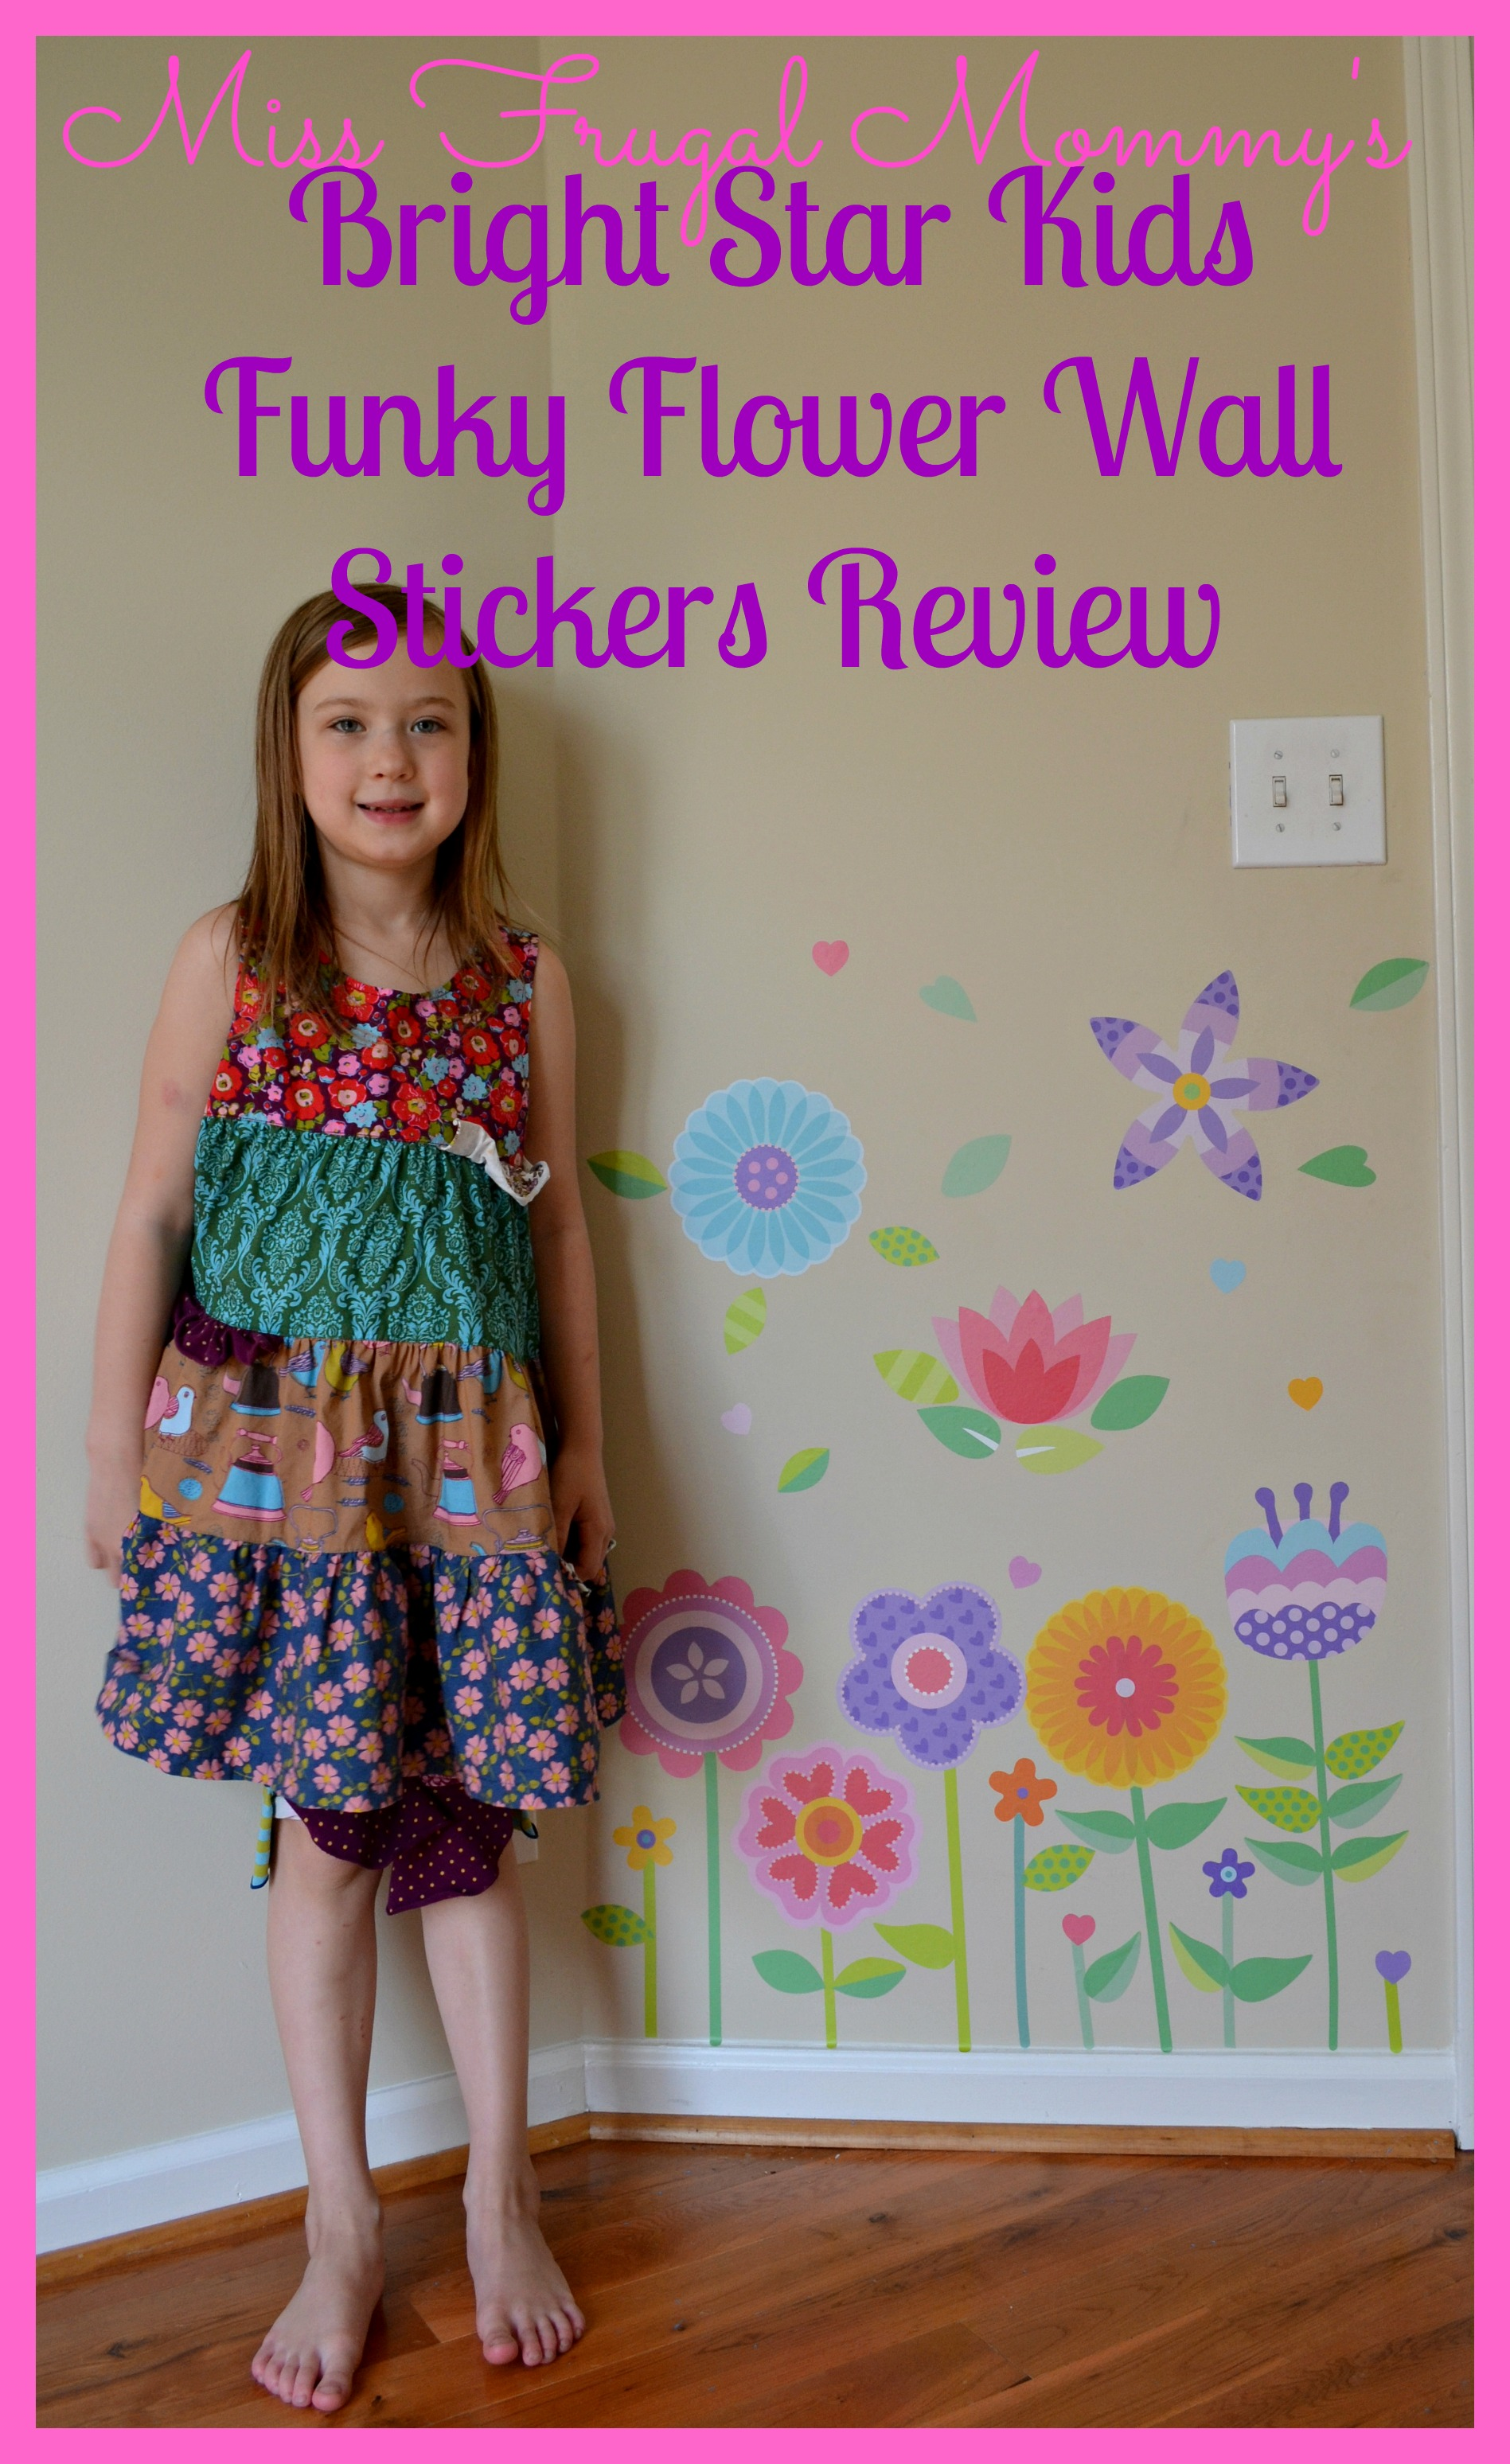 Bright Star Kids: Funky Flower Wall Stickers Review